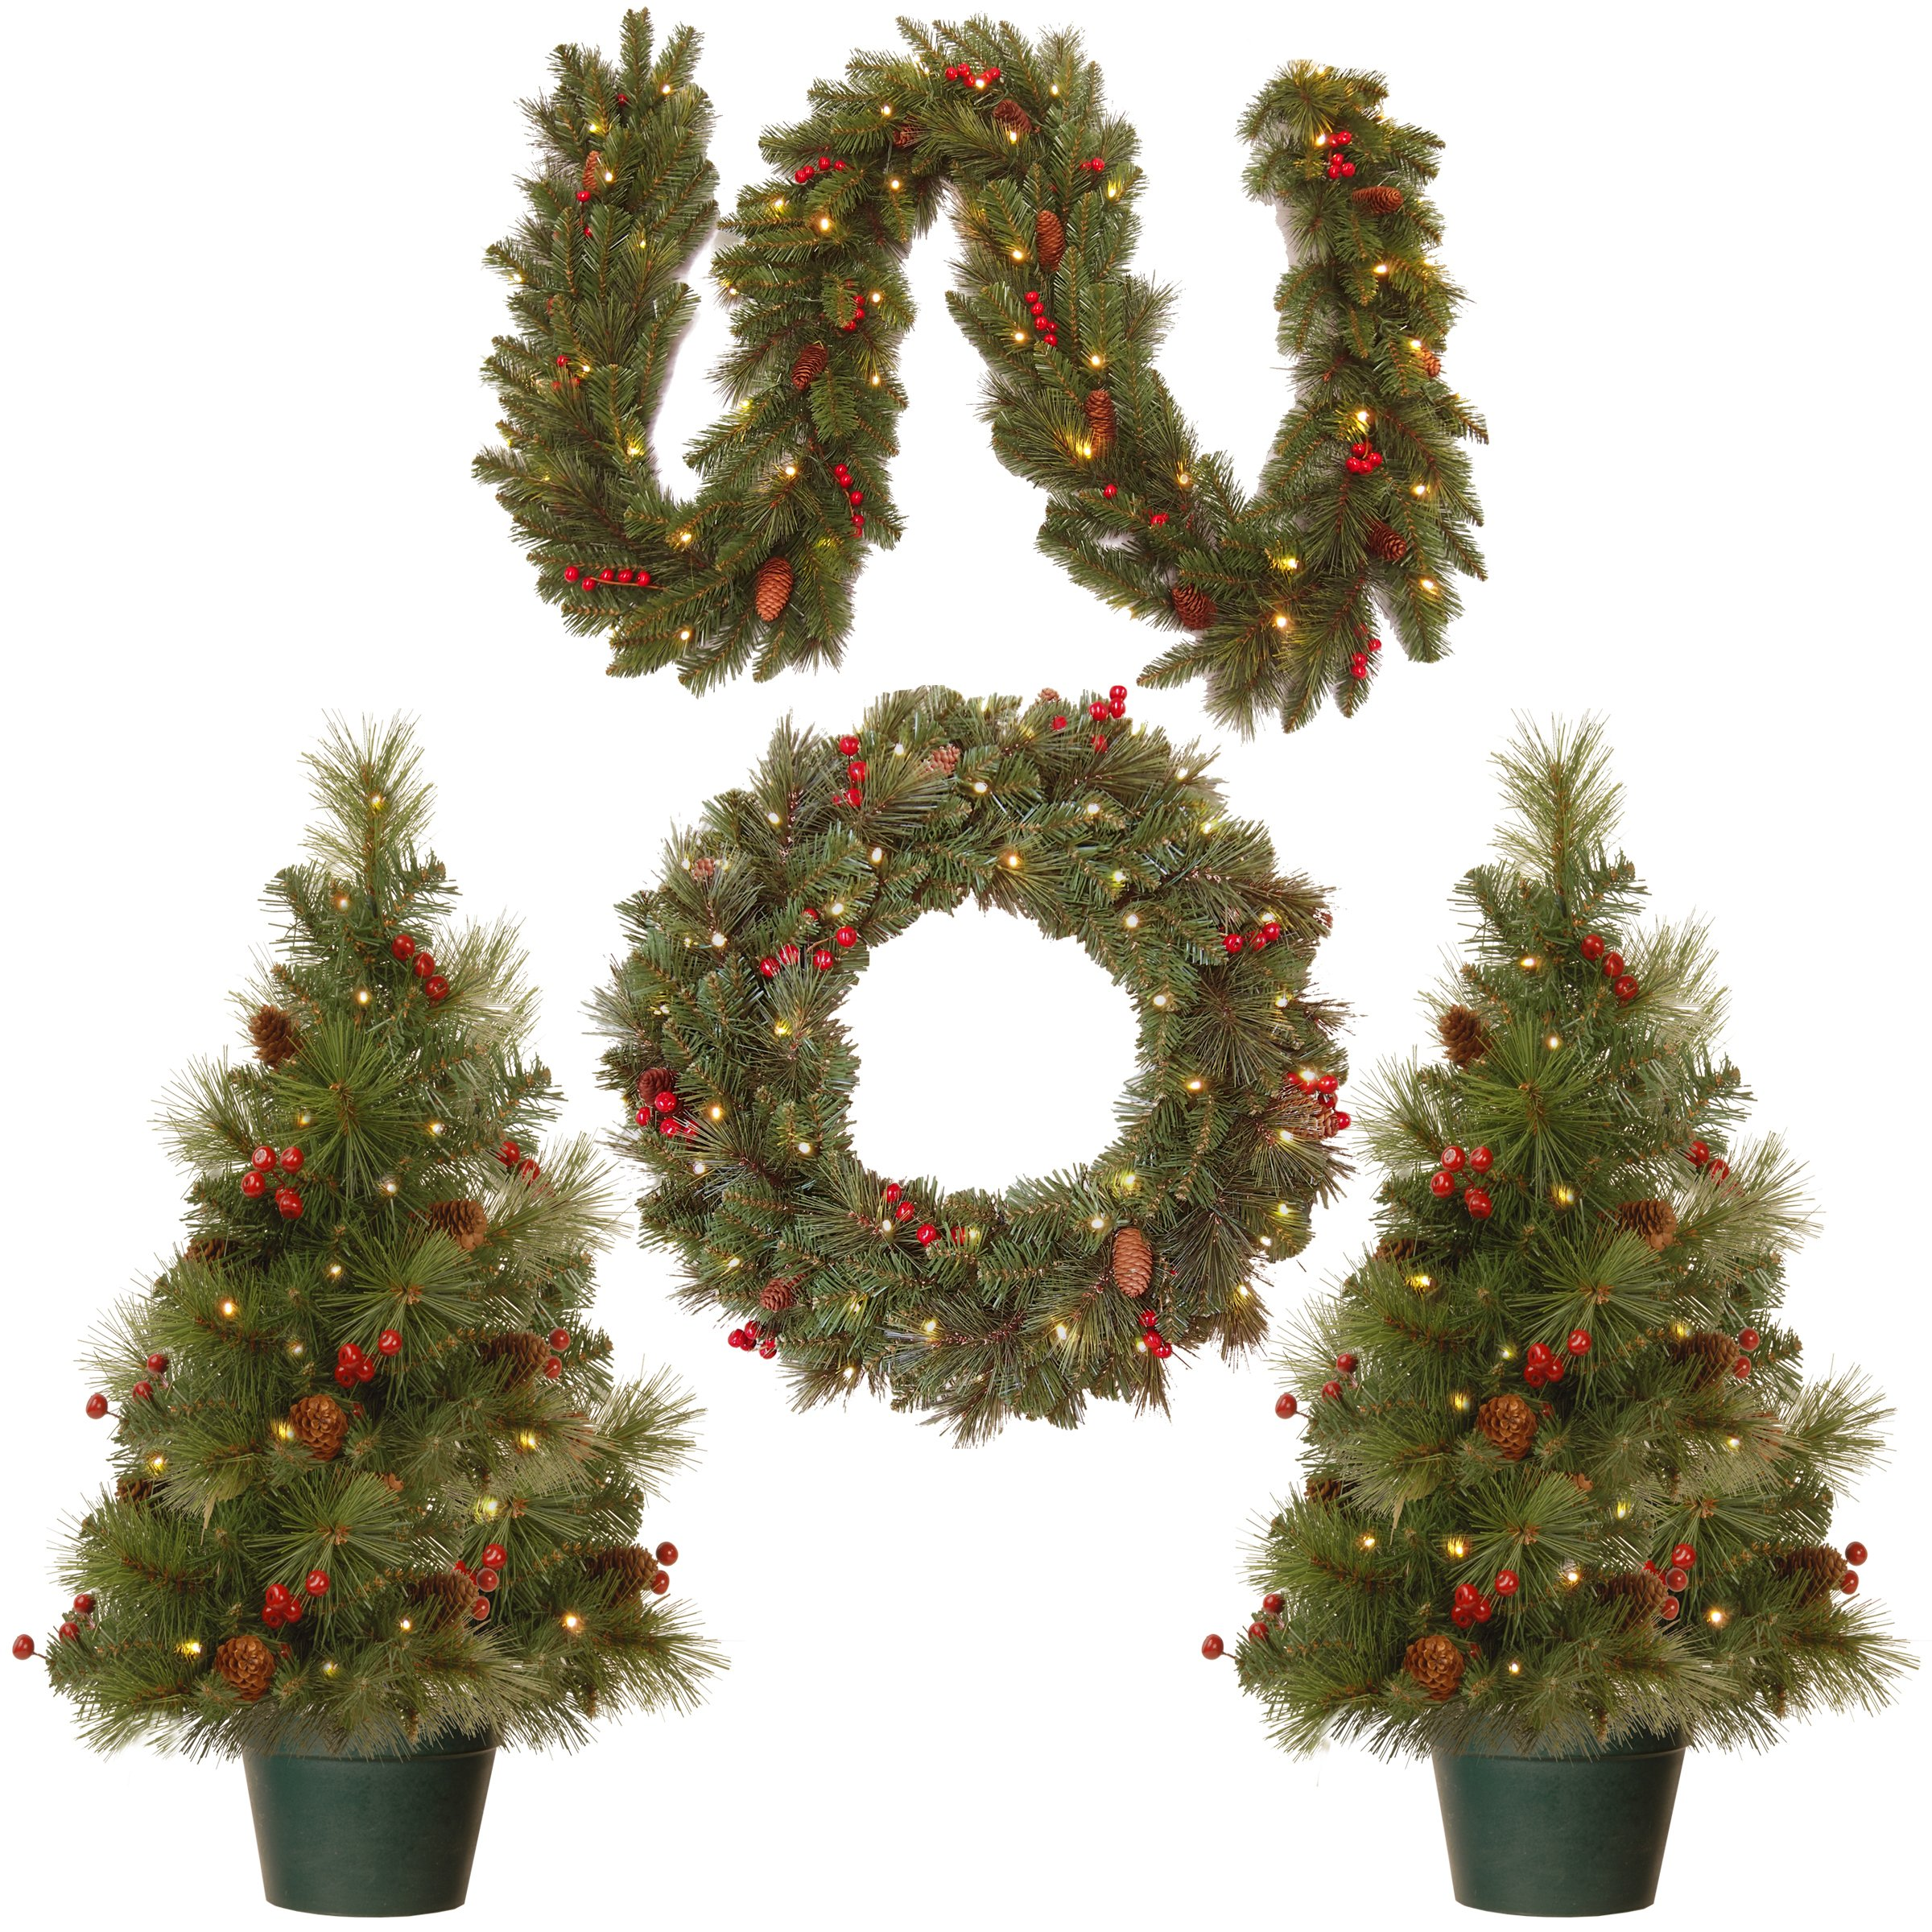 National Tree Holiday Decorating Assortment with 2 3 Foot Entrance Trees, 1 9 Foot by 8 Inch Garland and 1 24 Inch Wreath all with Warm White Battery Operated LED Lights (ED7-PRO-ASST) by National Tree Company